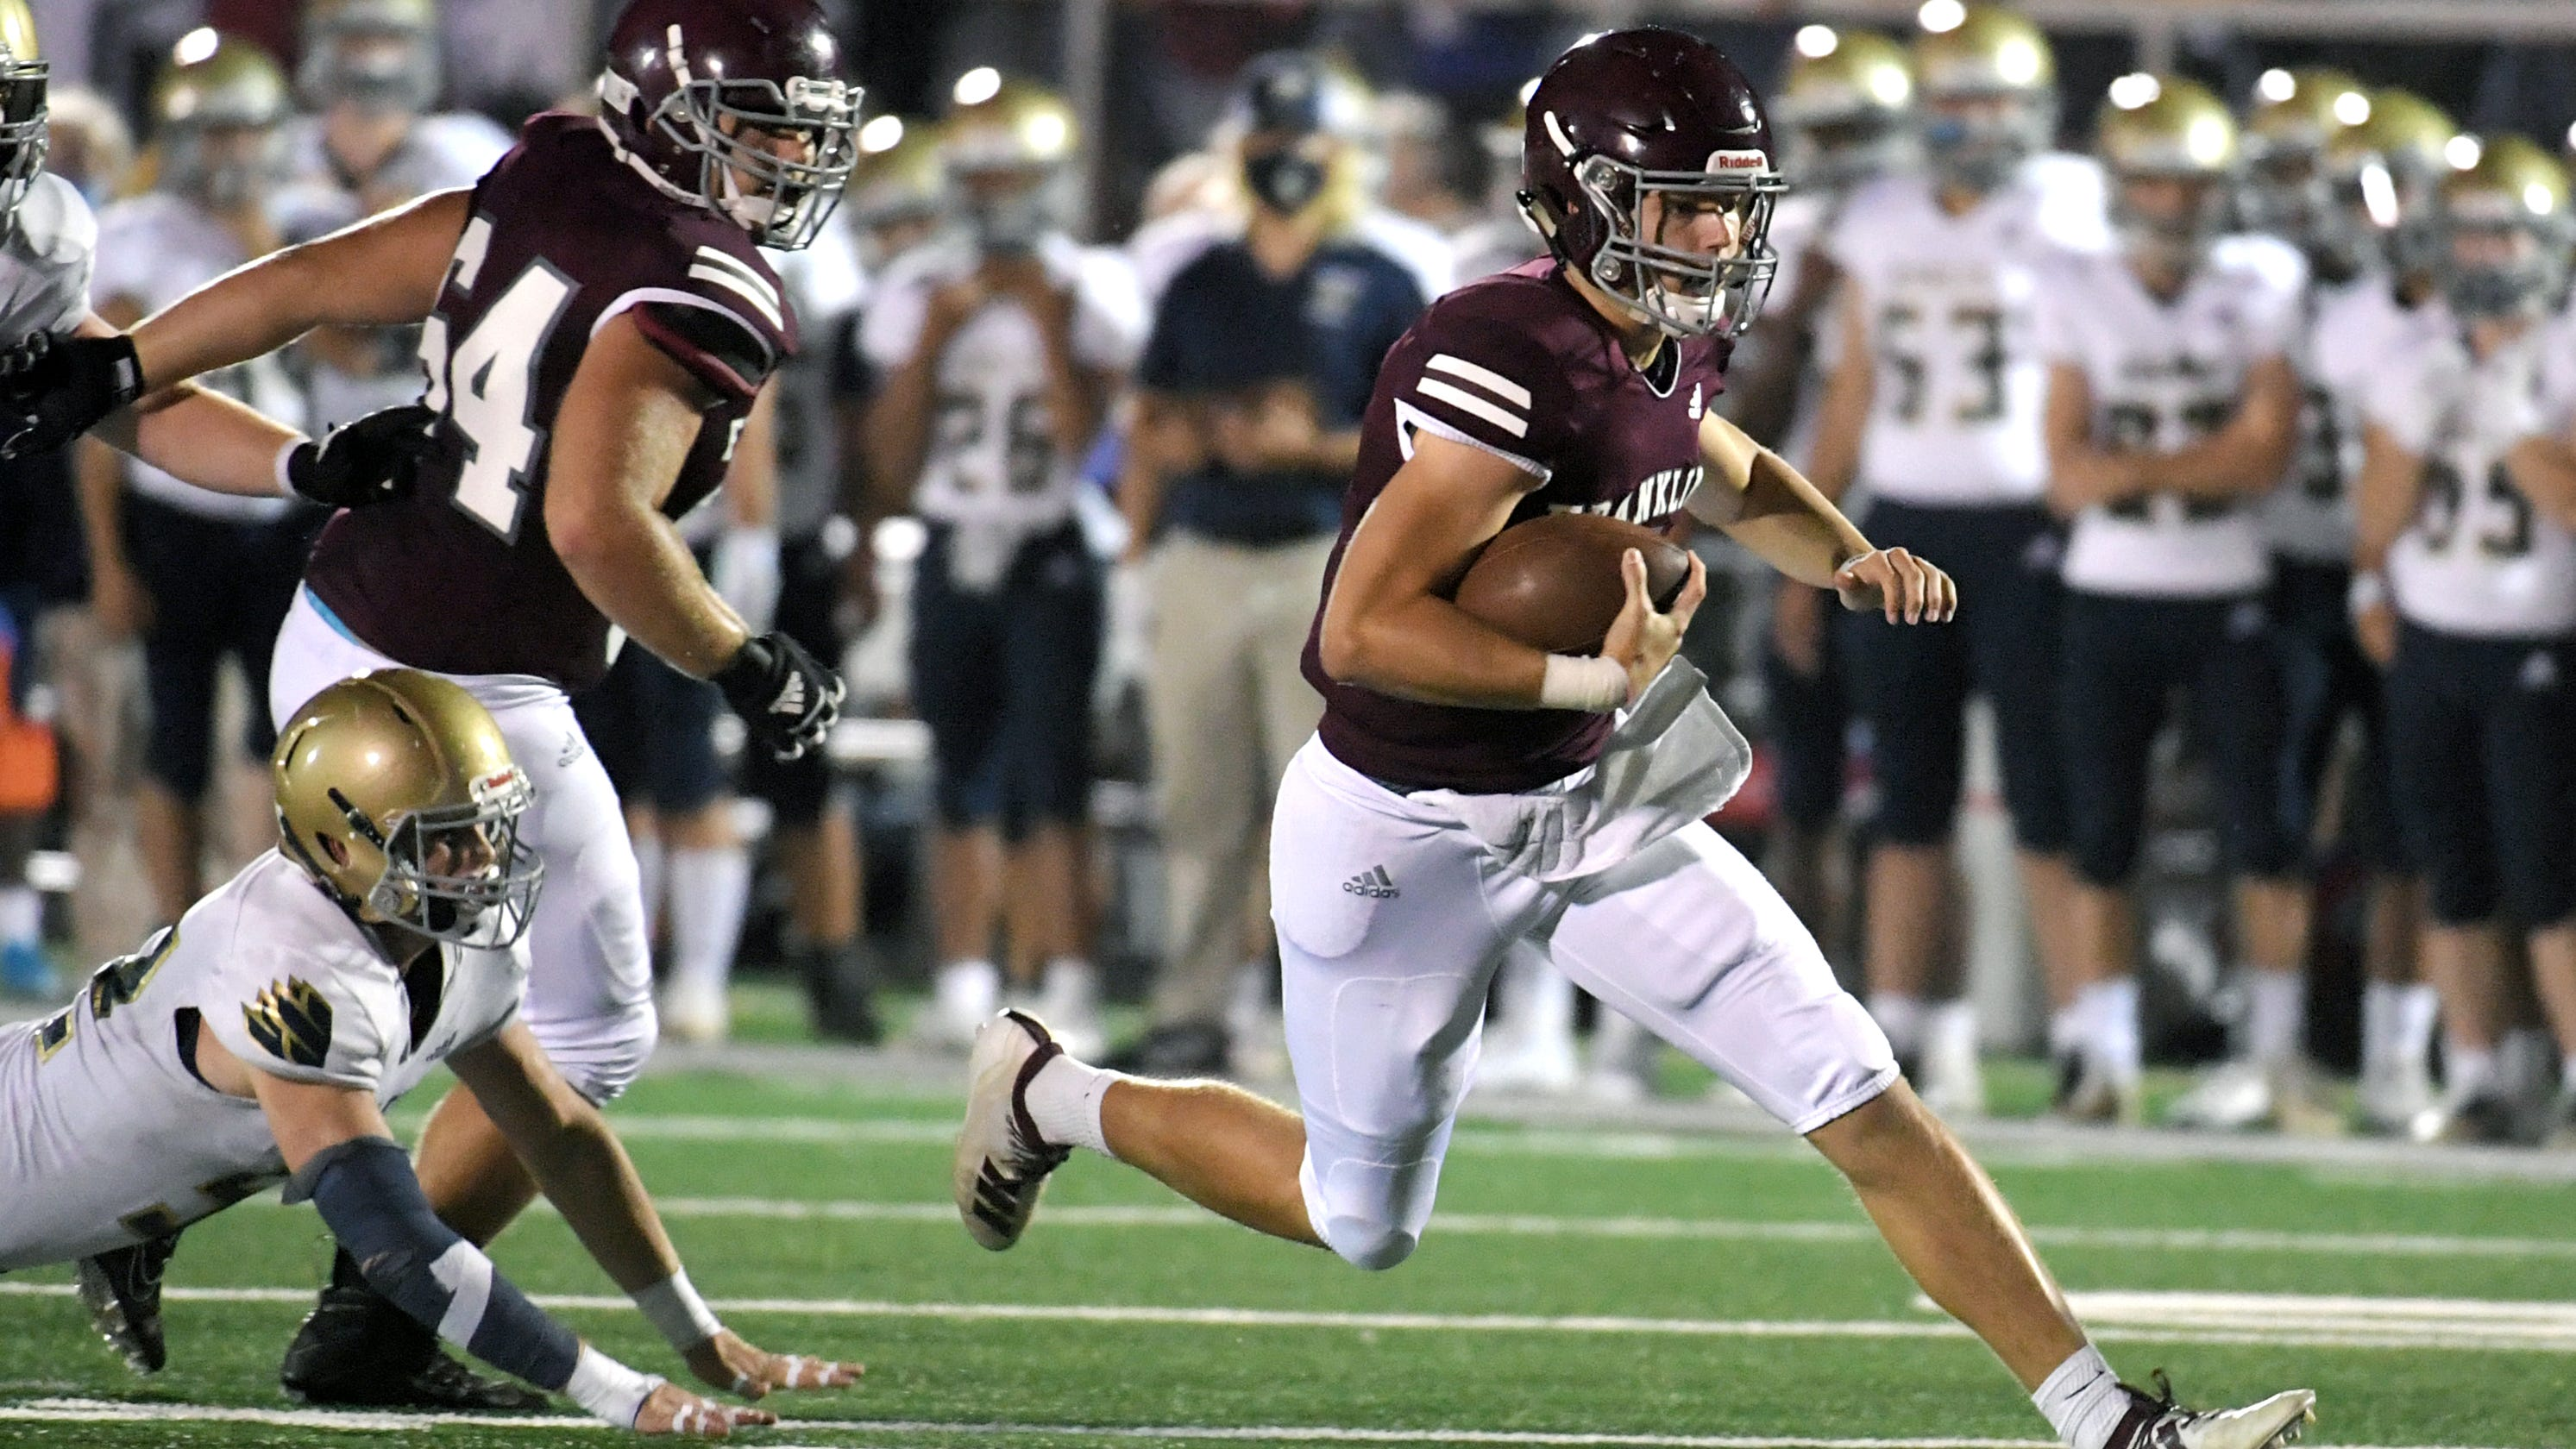 Nashville area high school football top performers from Week 10